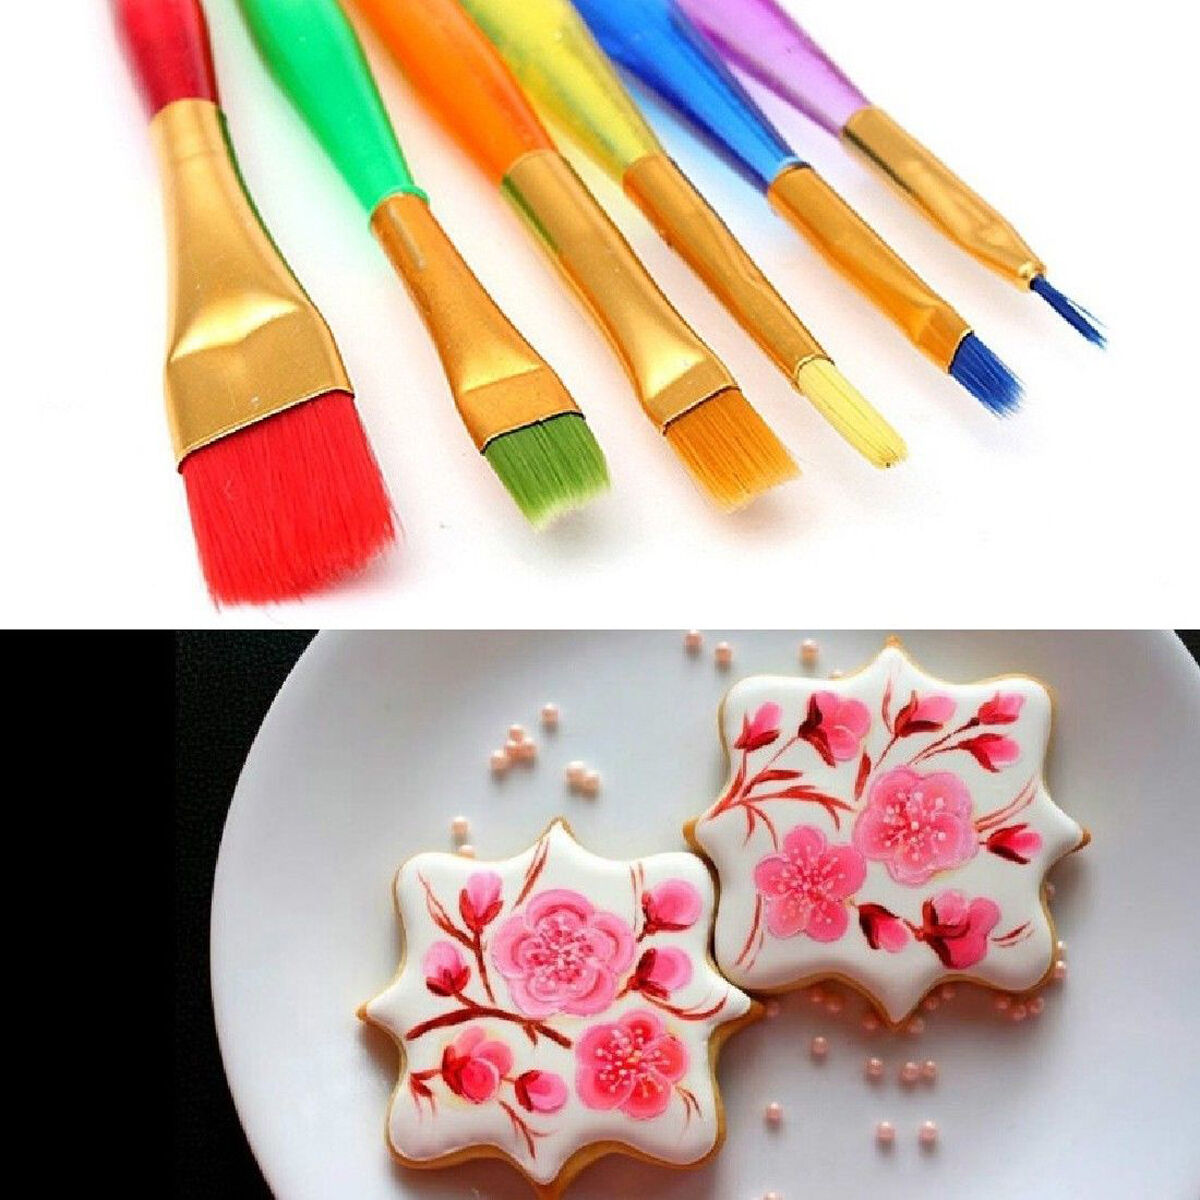 Cake Decorating Painting Icing : NT 6X Cake Icing Decorating Painting Brush Fondant Dusting ...